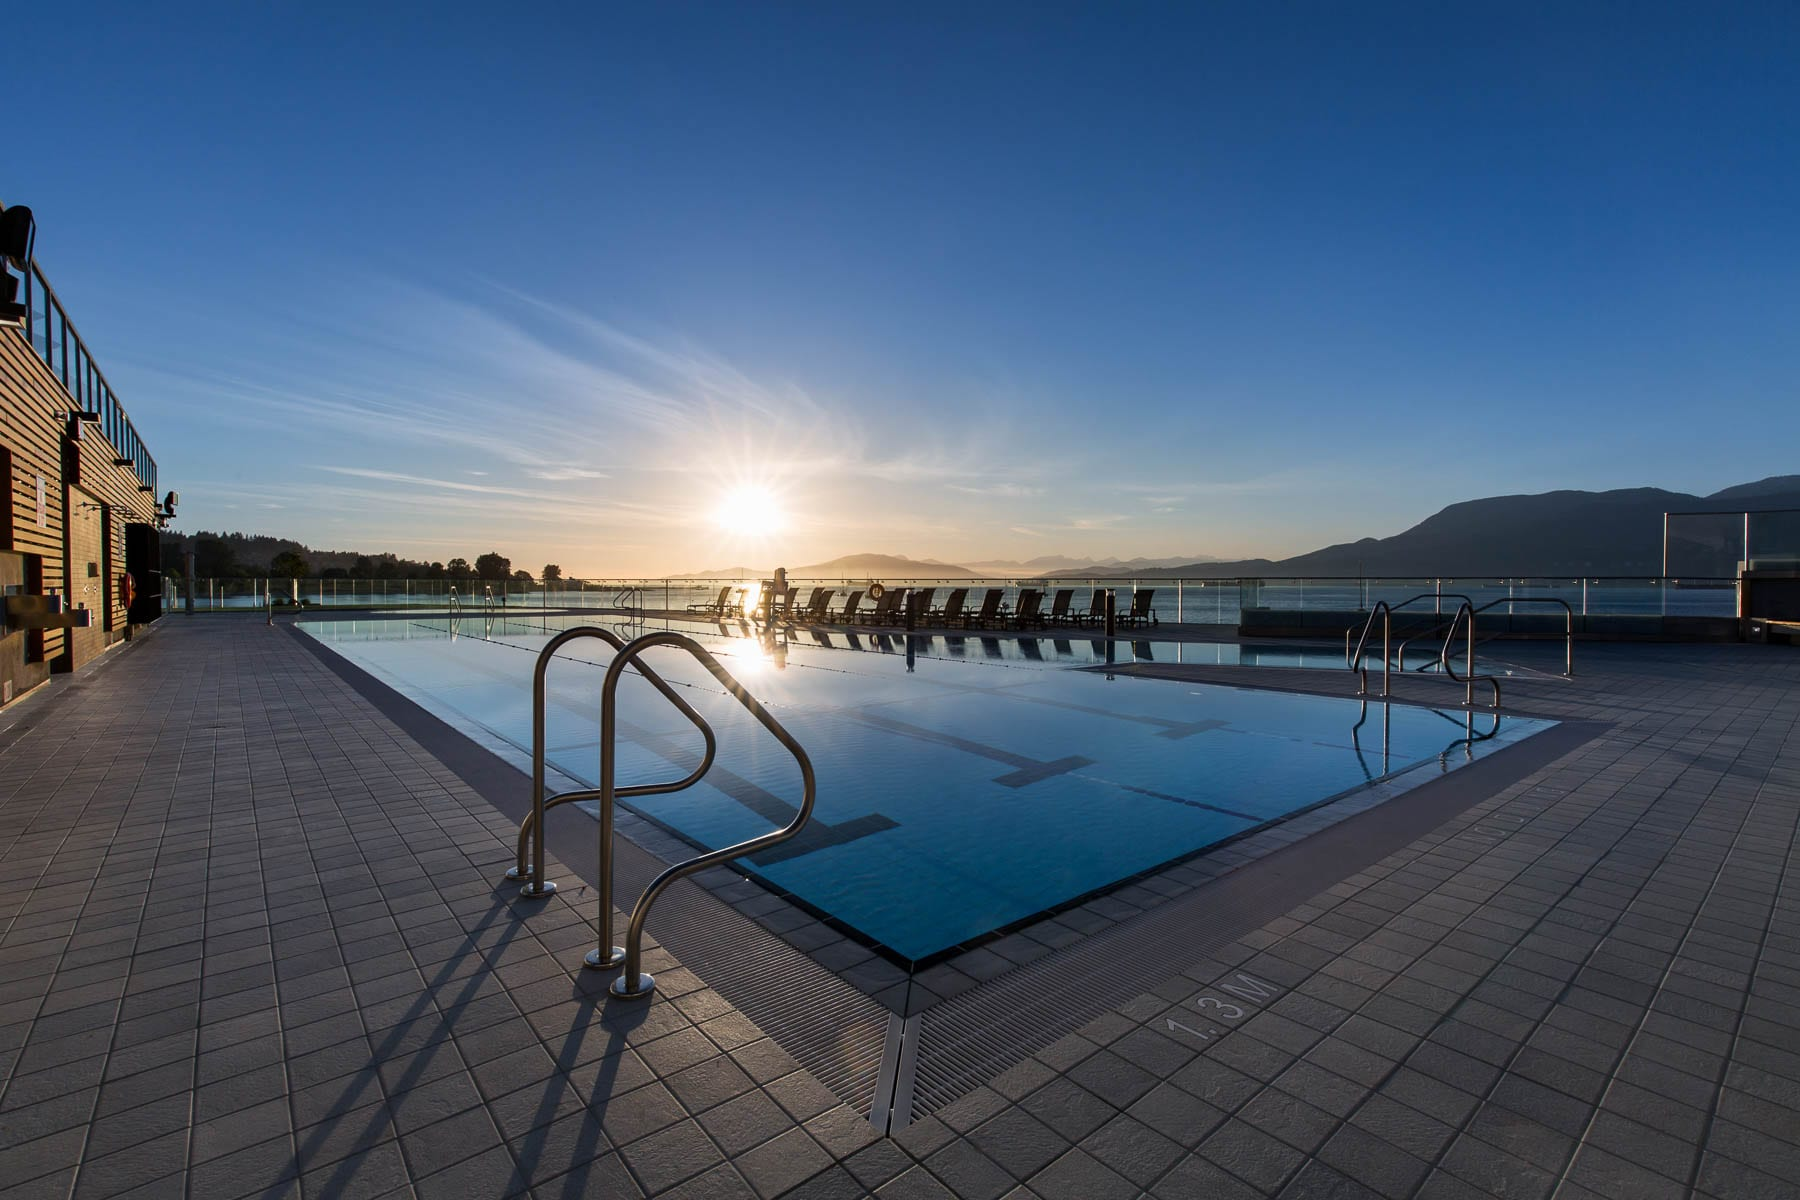 Renovated point grey outdoor swimming pool at beautiful sunrise